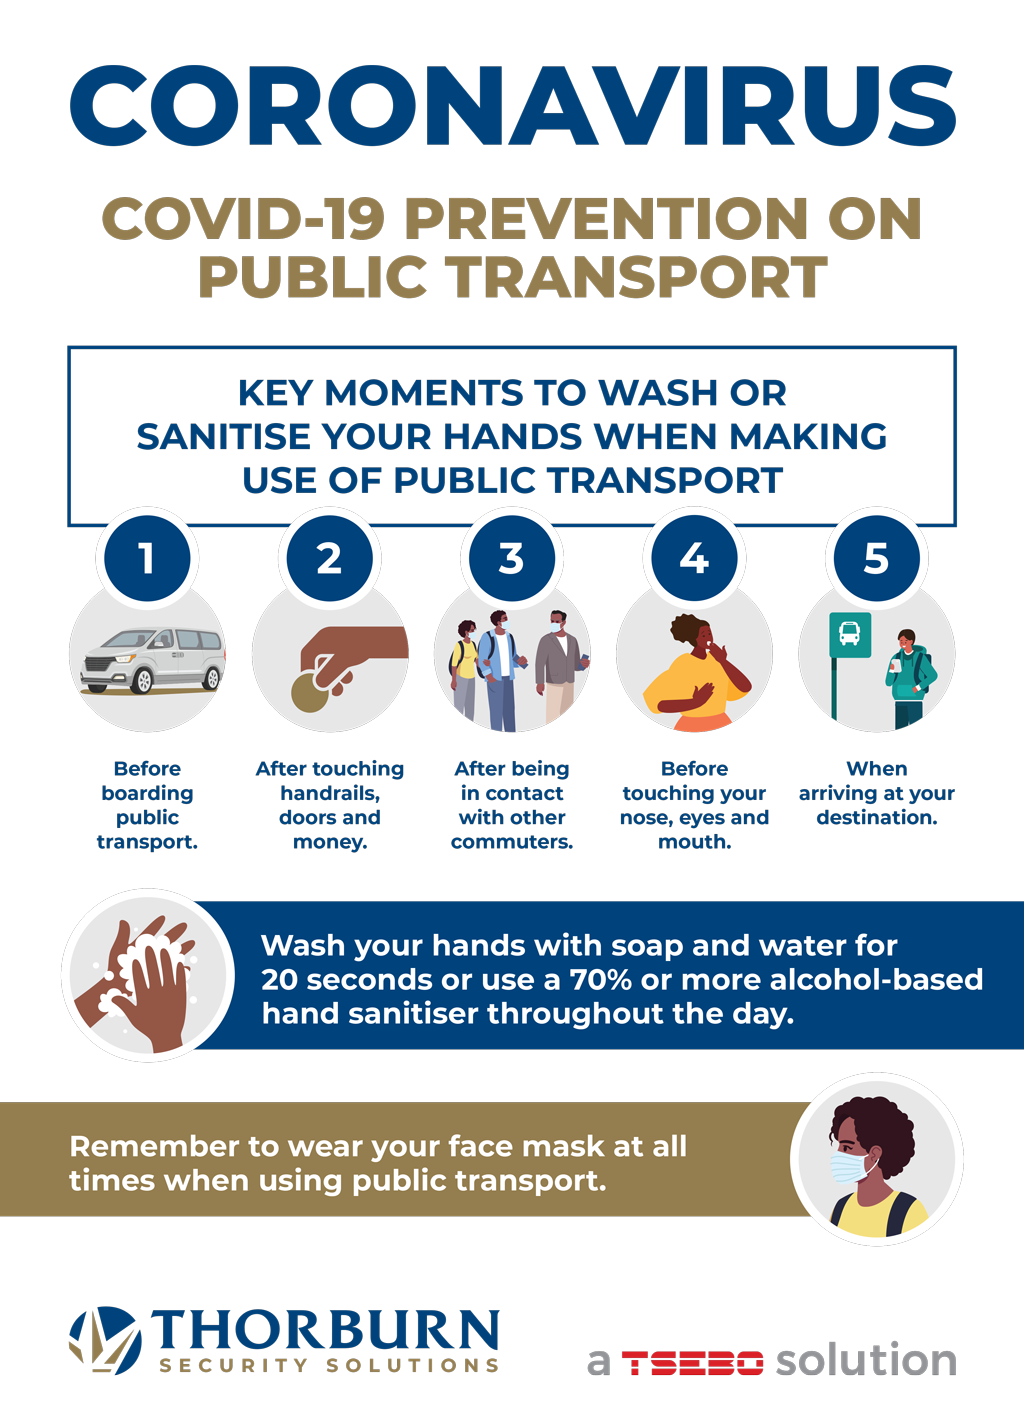 Thorburn Security Services South Africa - Our Values - Thorburn Coronavirus Public Transport Poster